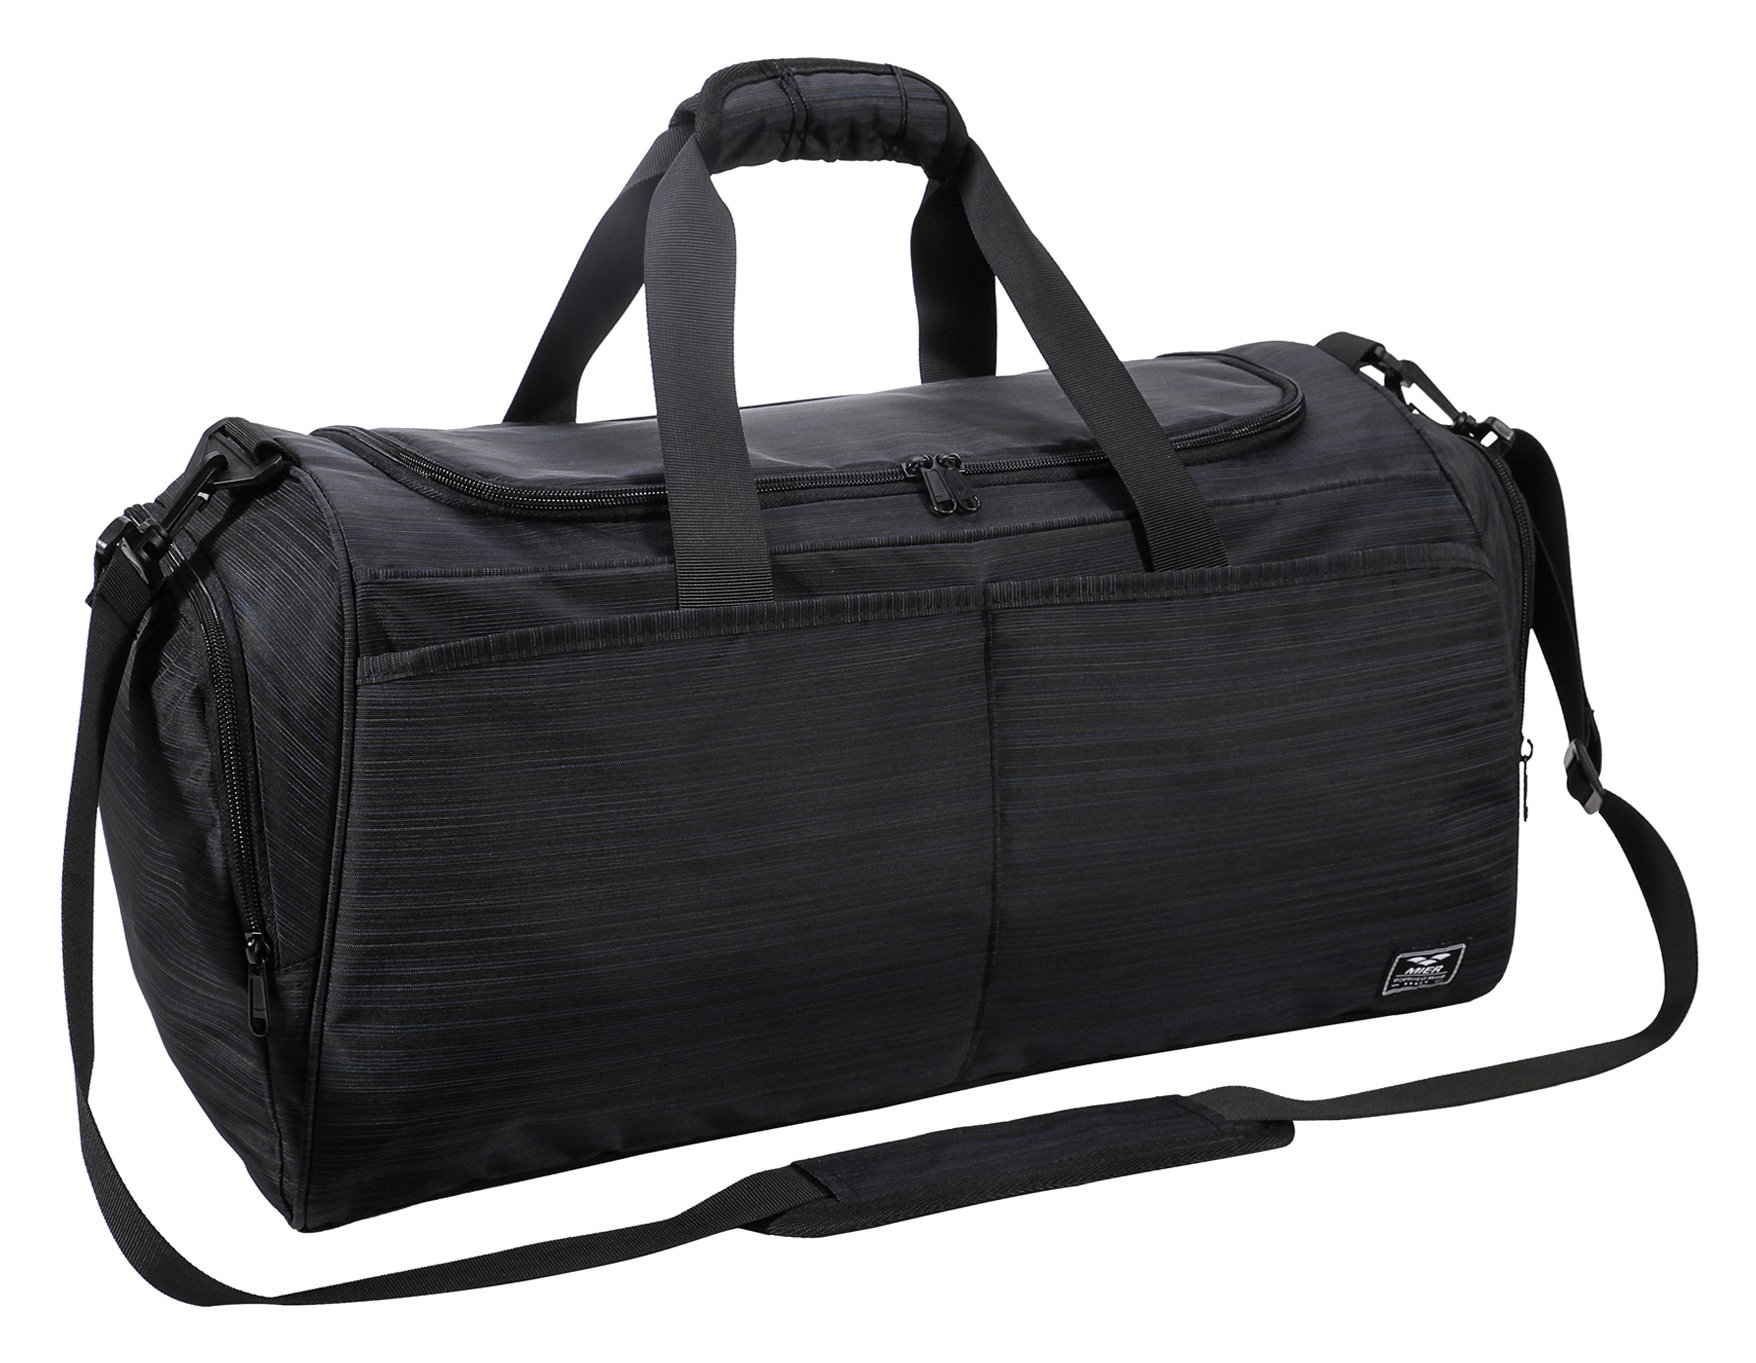 "MIER Gym Bag for Women and Men Sports Duffle with shoe Compartment, 21"", Black"